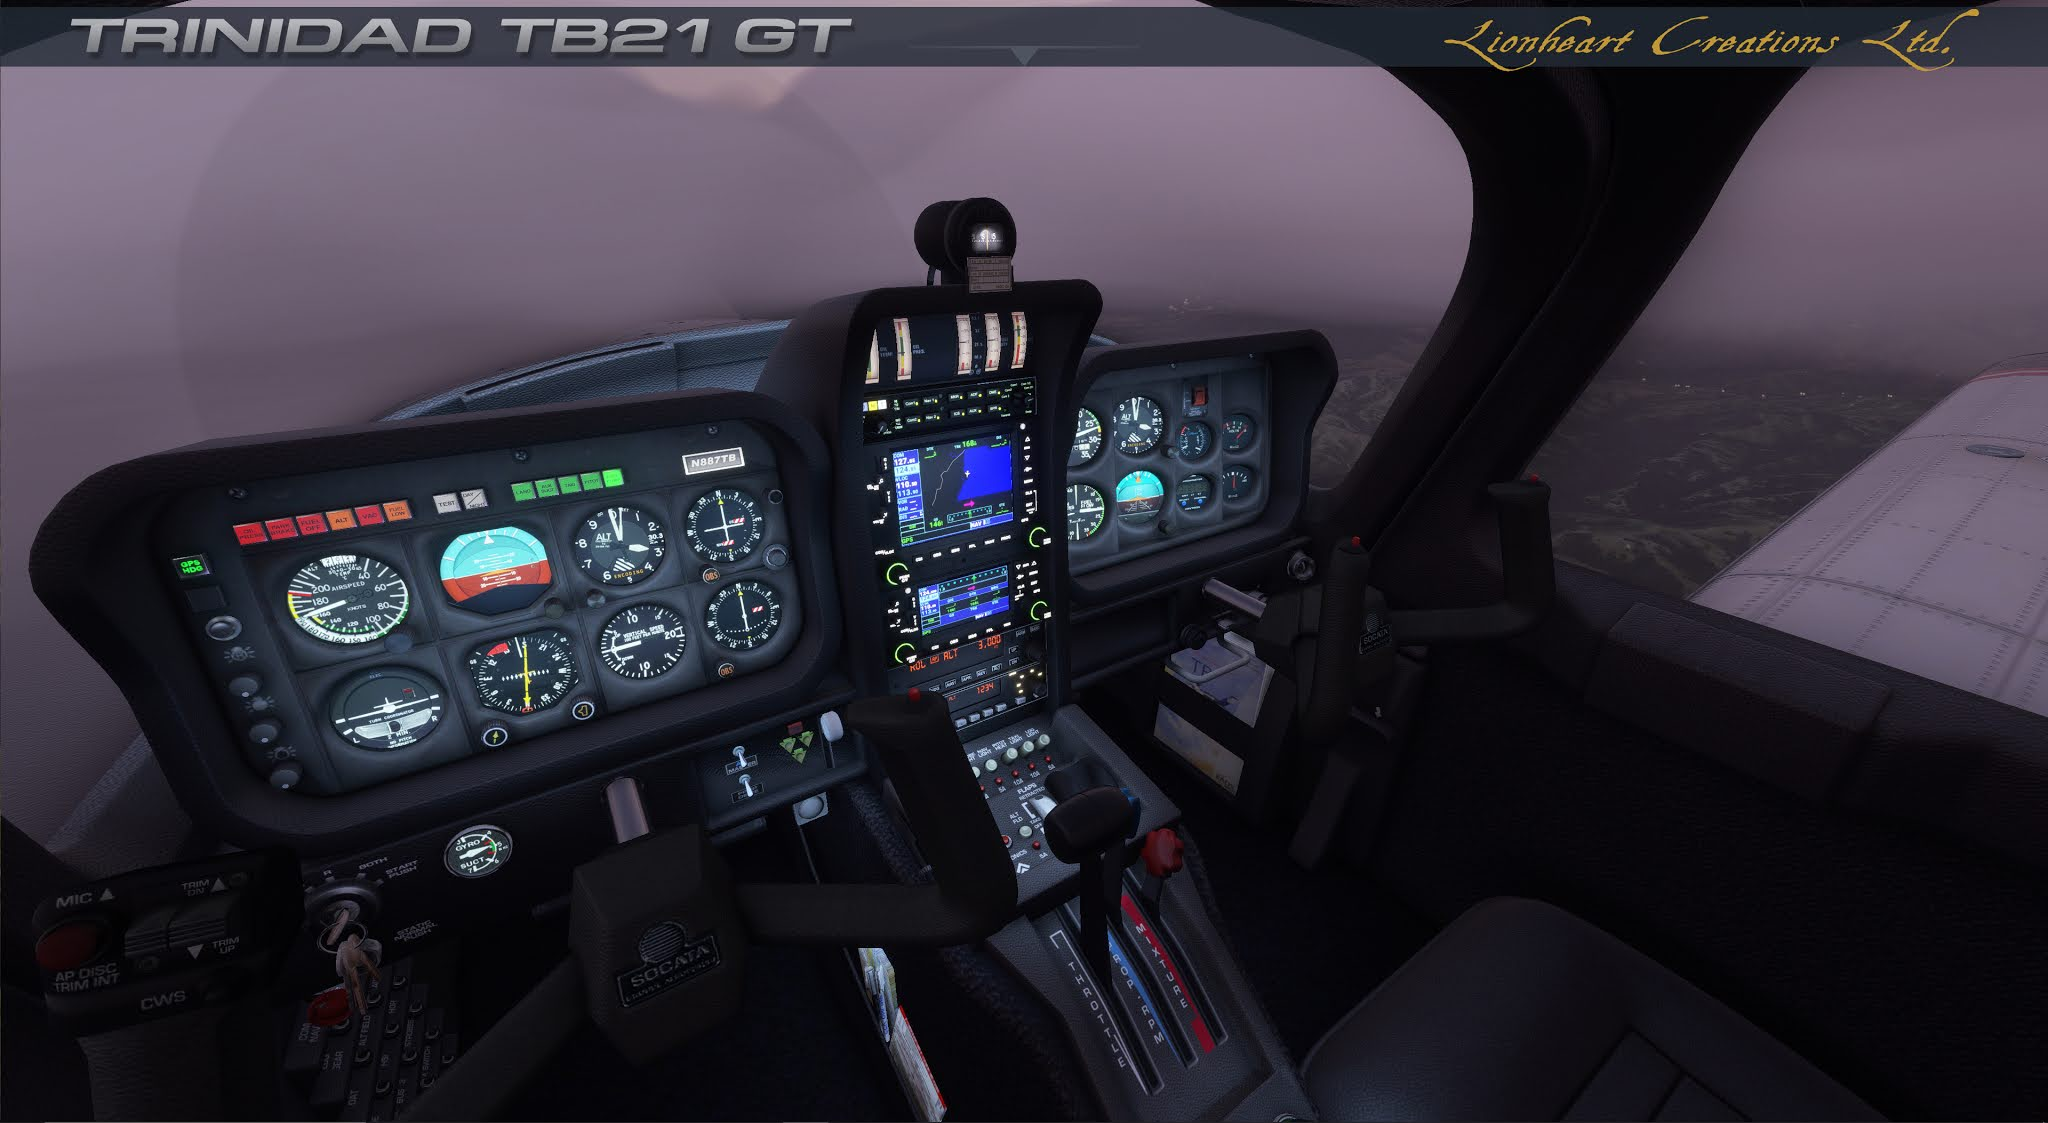 TRINIDAD TB-21 GT V3.6  259916_Screenshot_1657